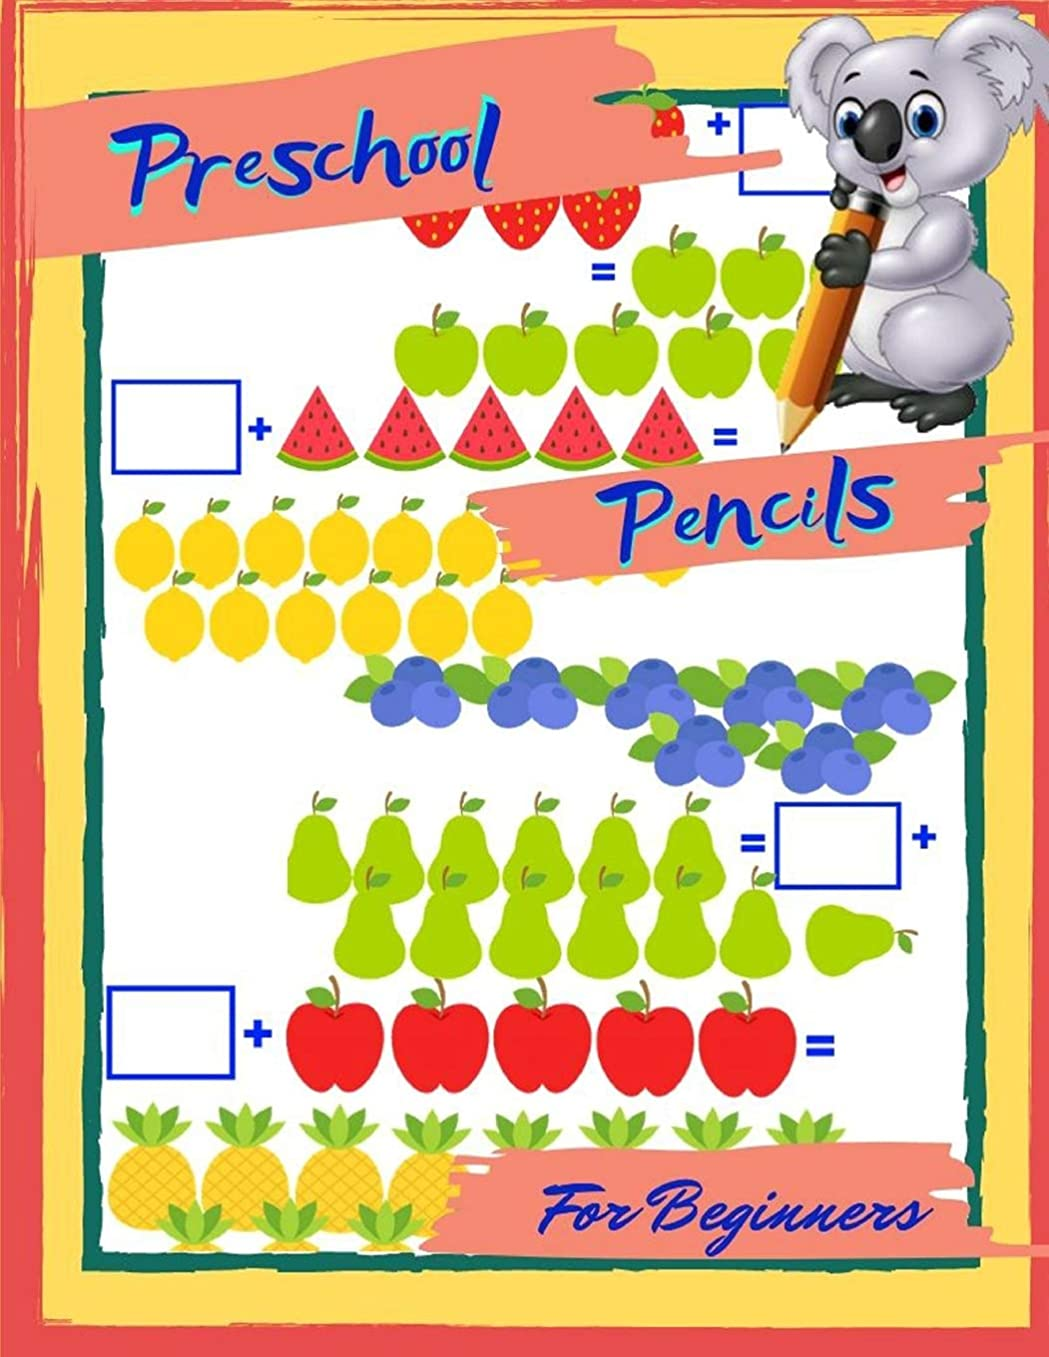 恐れナットチームPreschool Pencils For Beginners: 1st Grade Common Core Math Daily Practice Workbook, Practice Questions and Activity Book for   Toddlers Fun Activities.